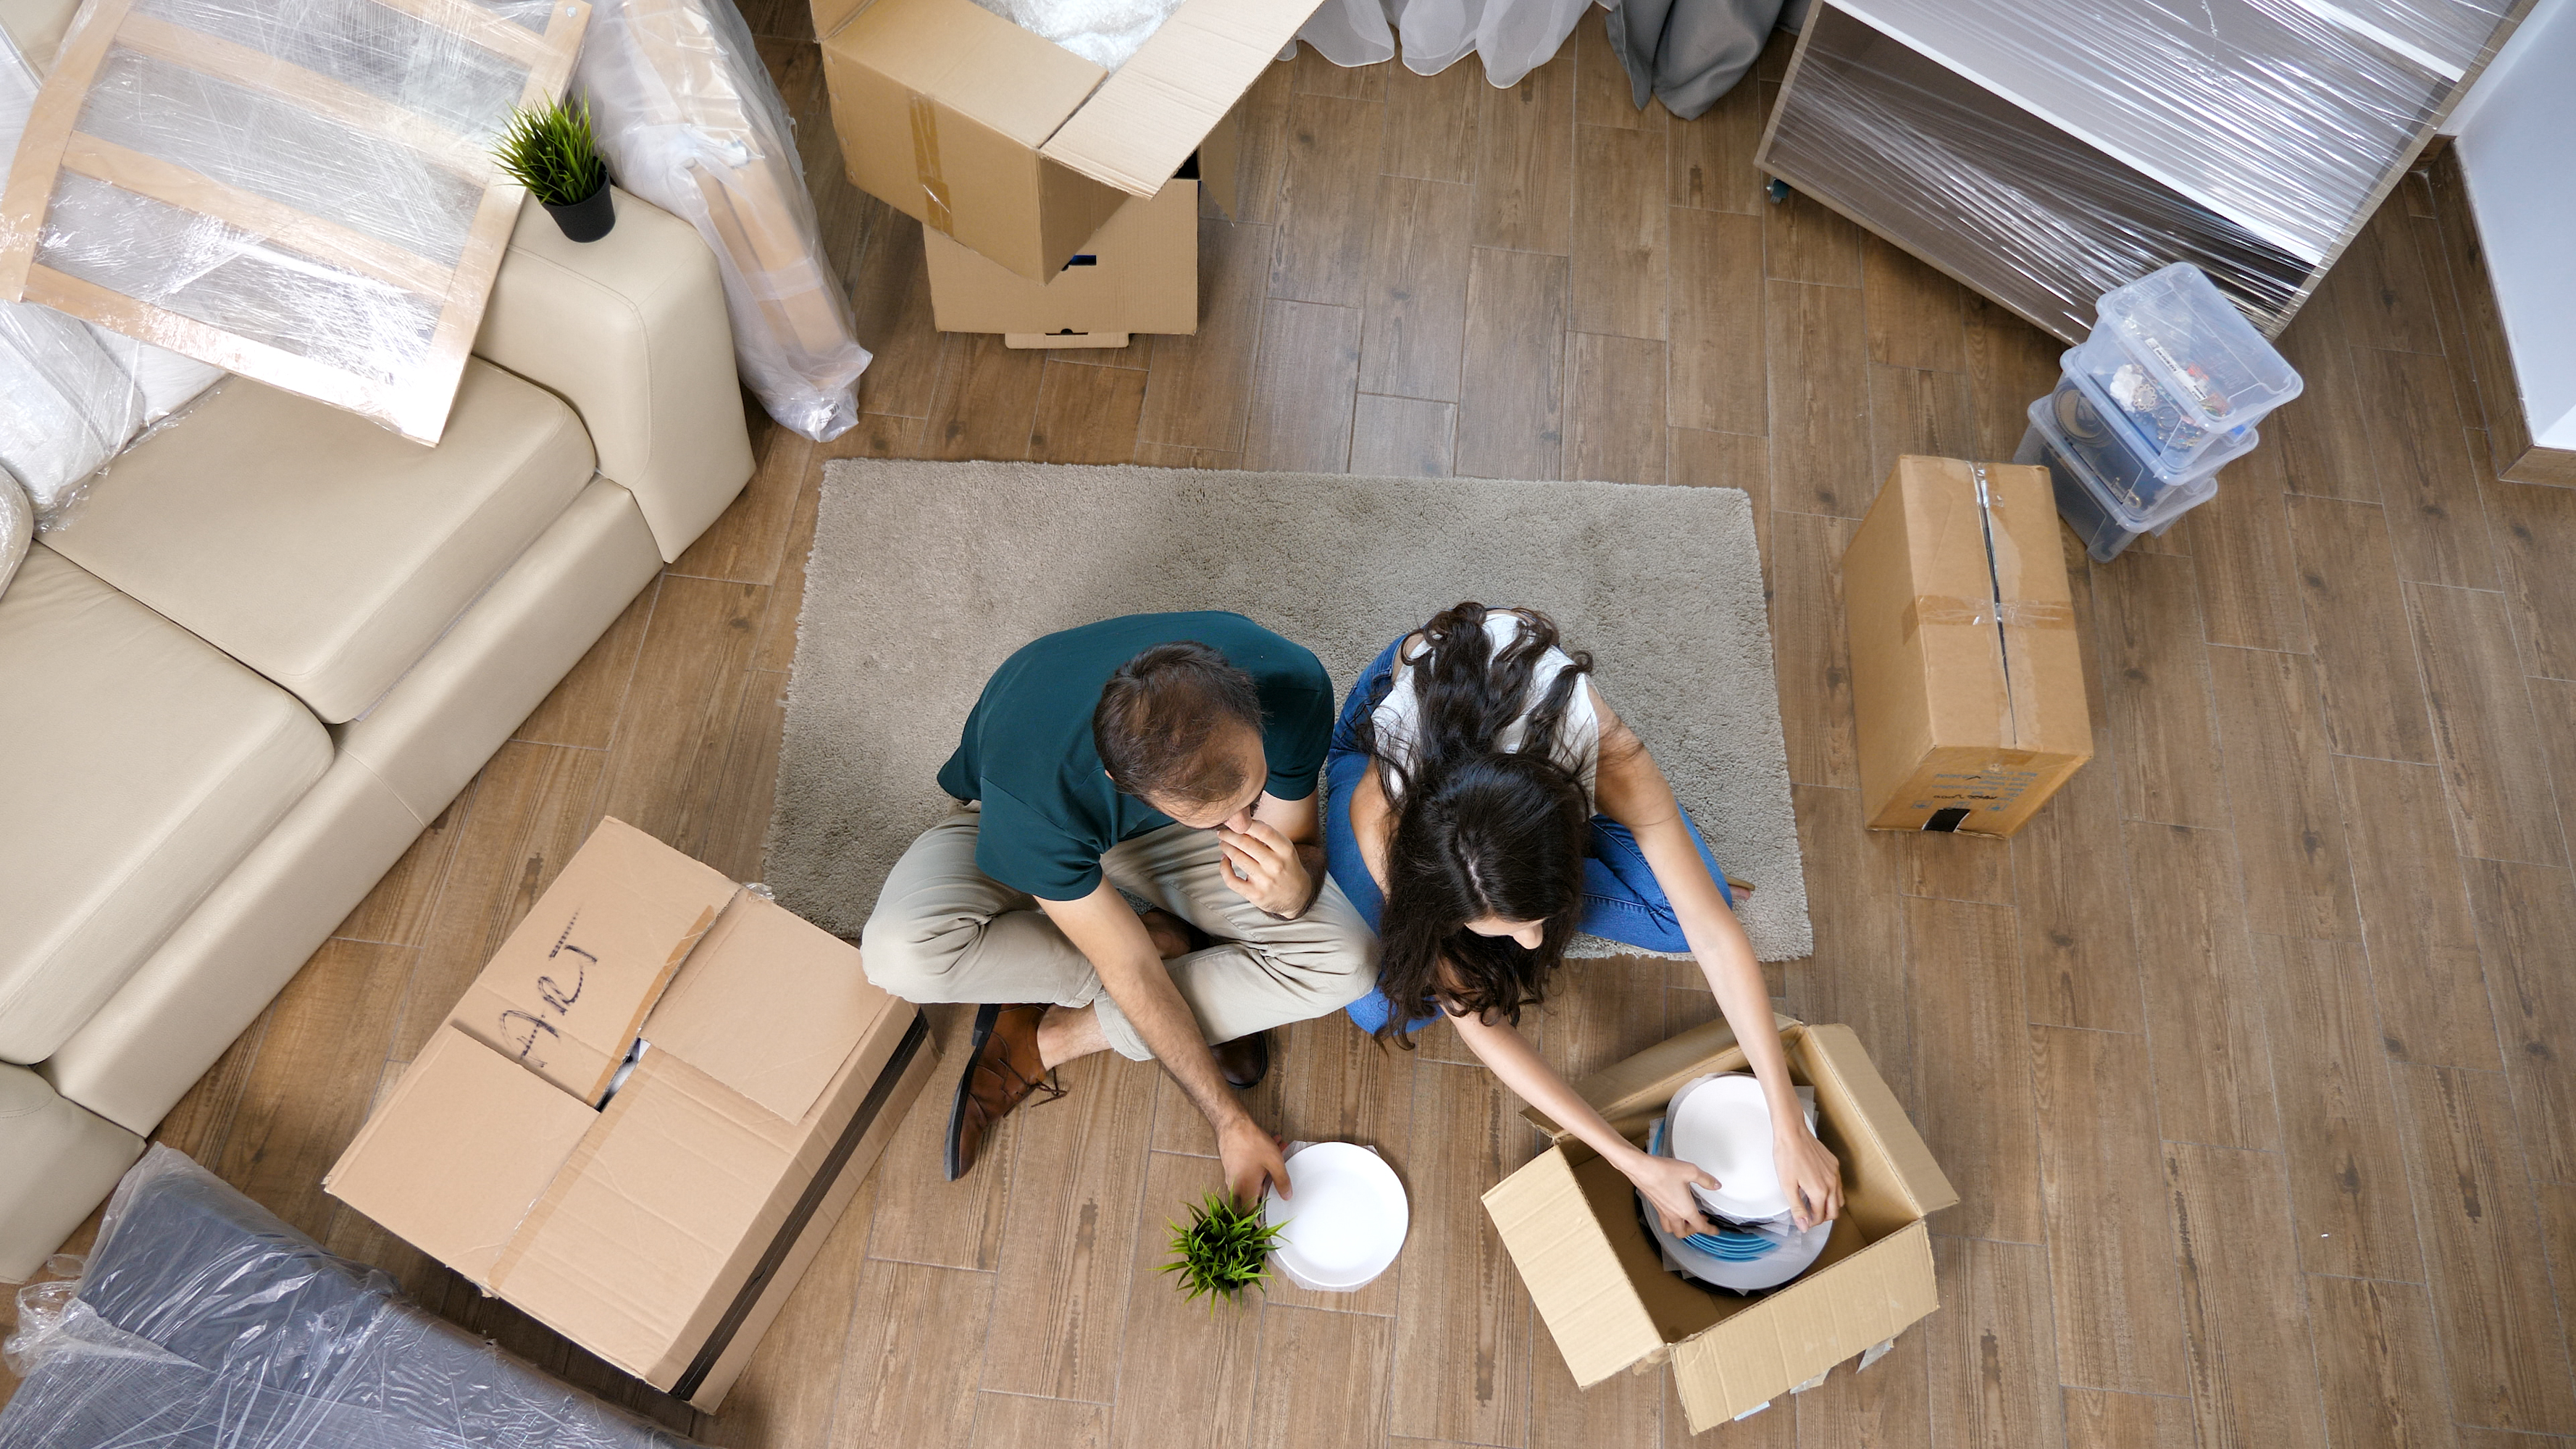 young-couple-moving-in-new-home-and-unpacking-carb-VA5HRWJ